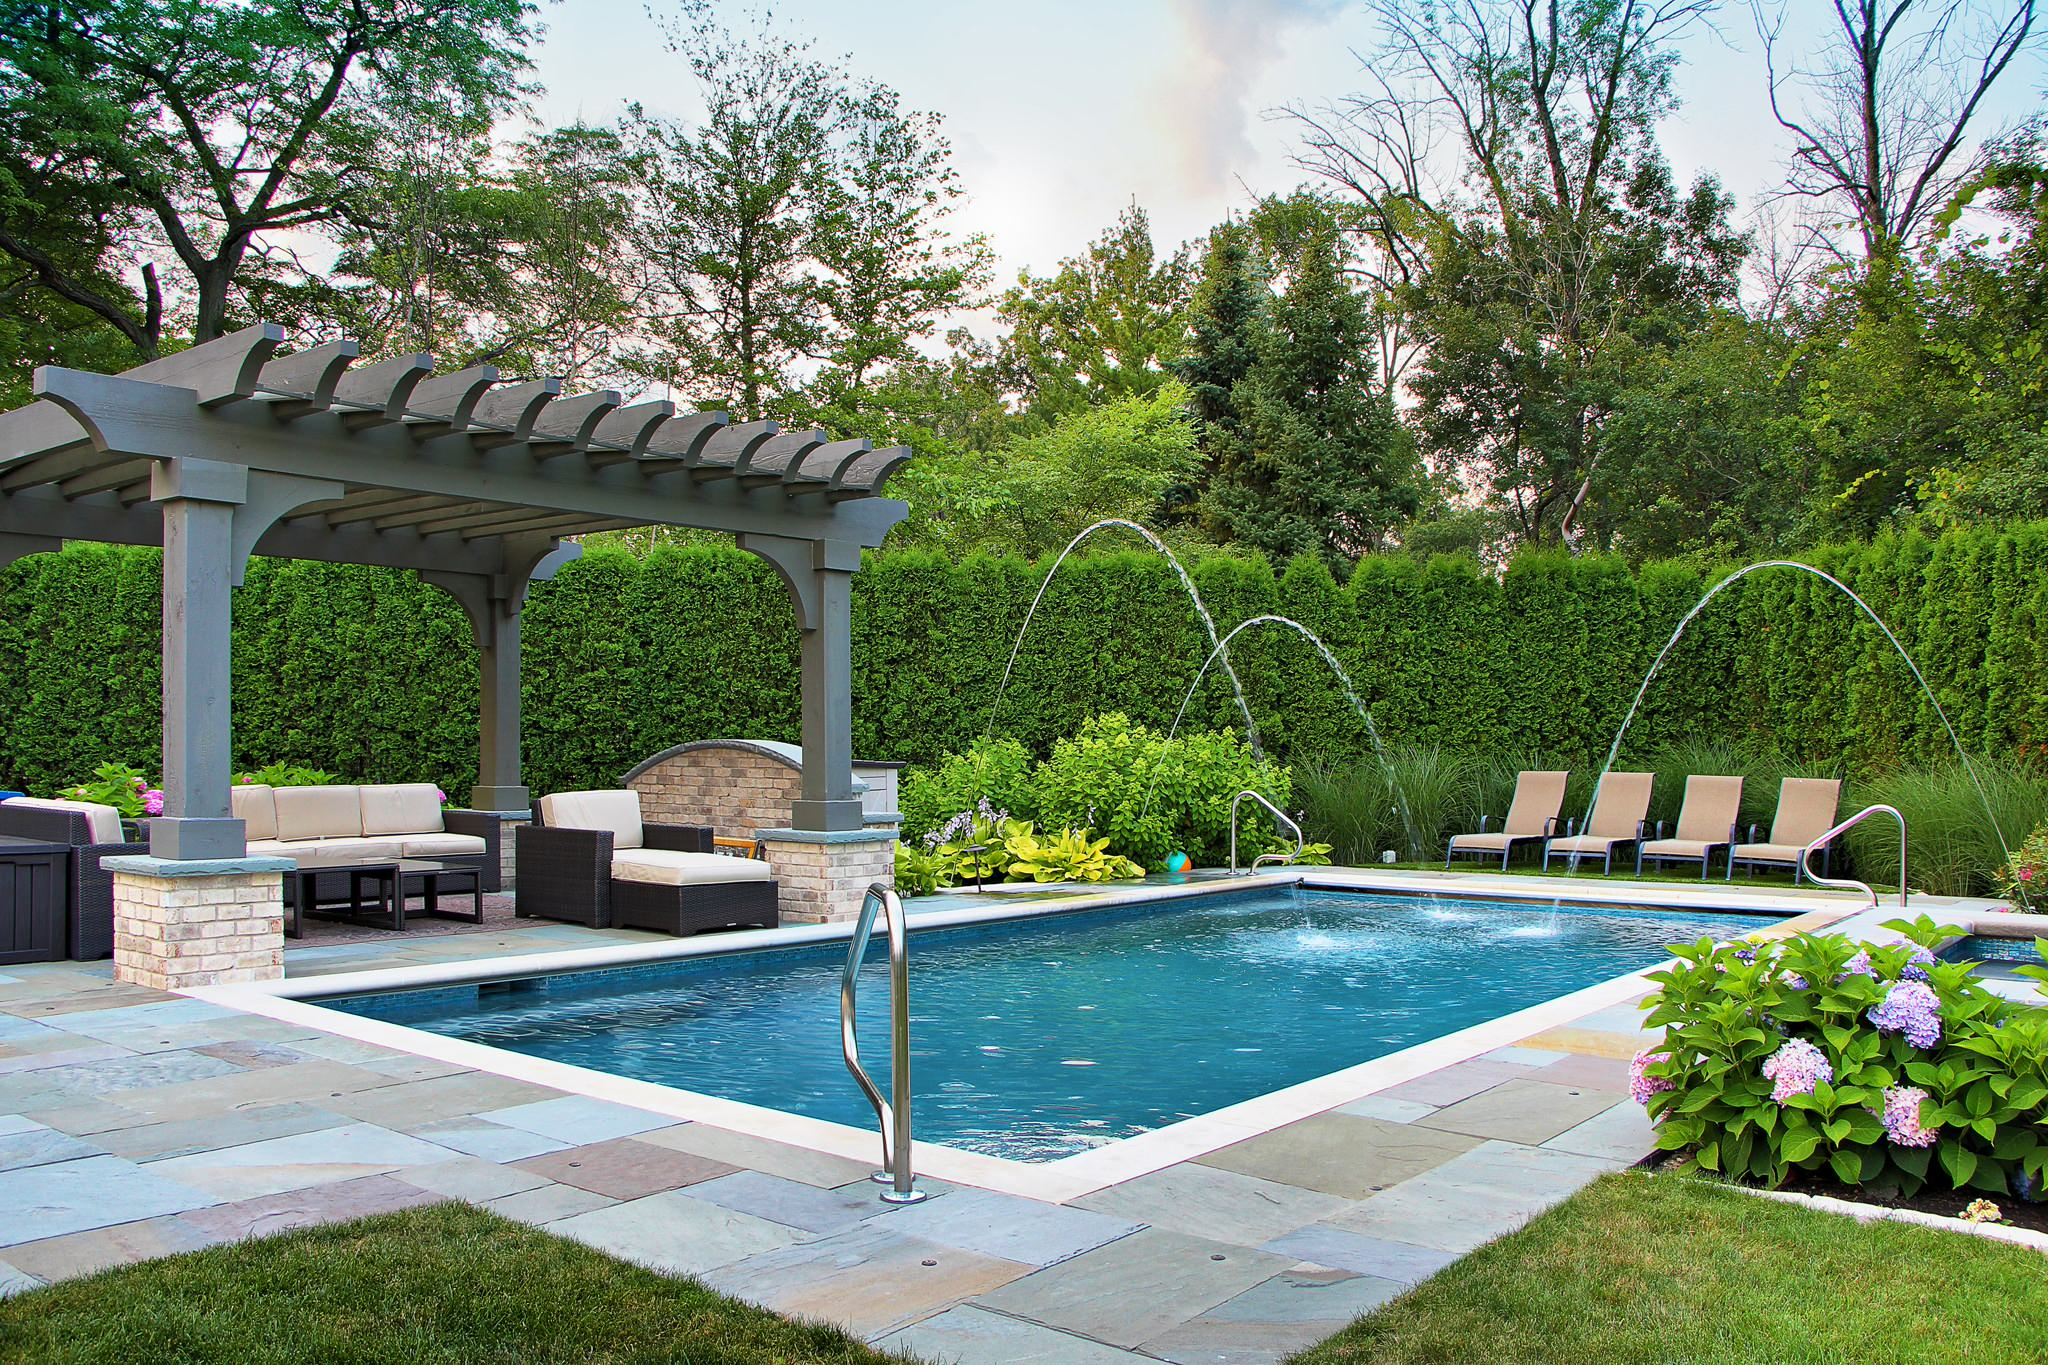 75 Beautiful Traditional Pool Pictures Ideas March 2021 Houzz